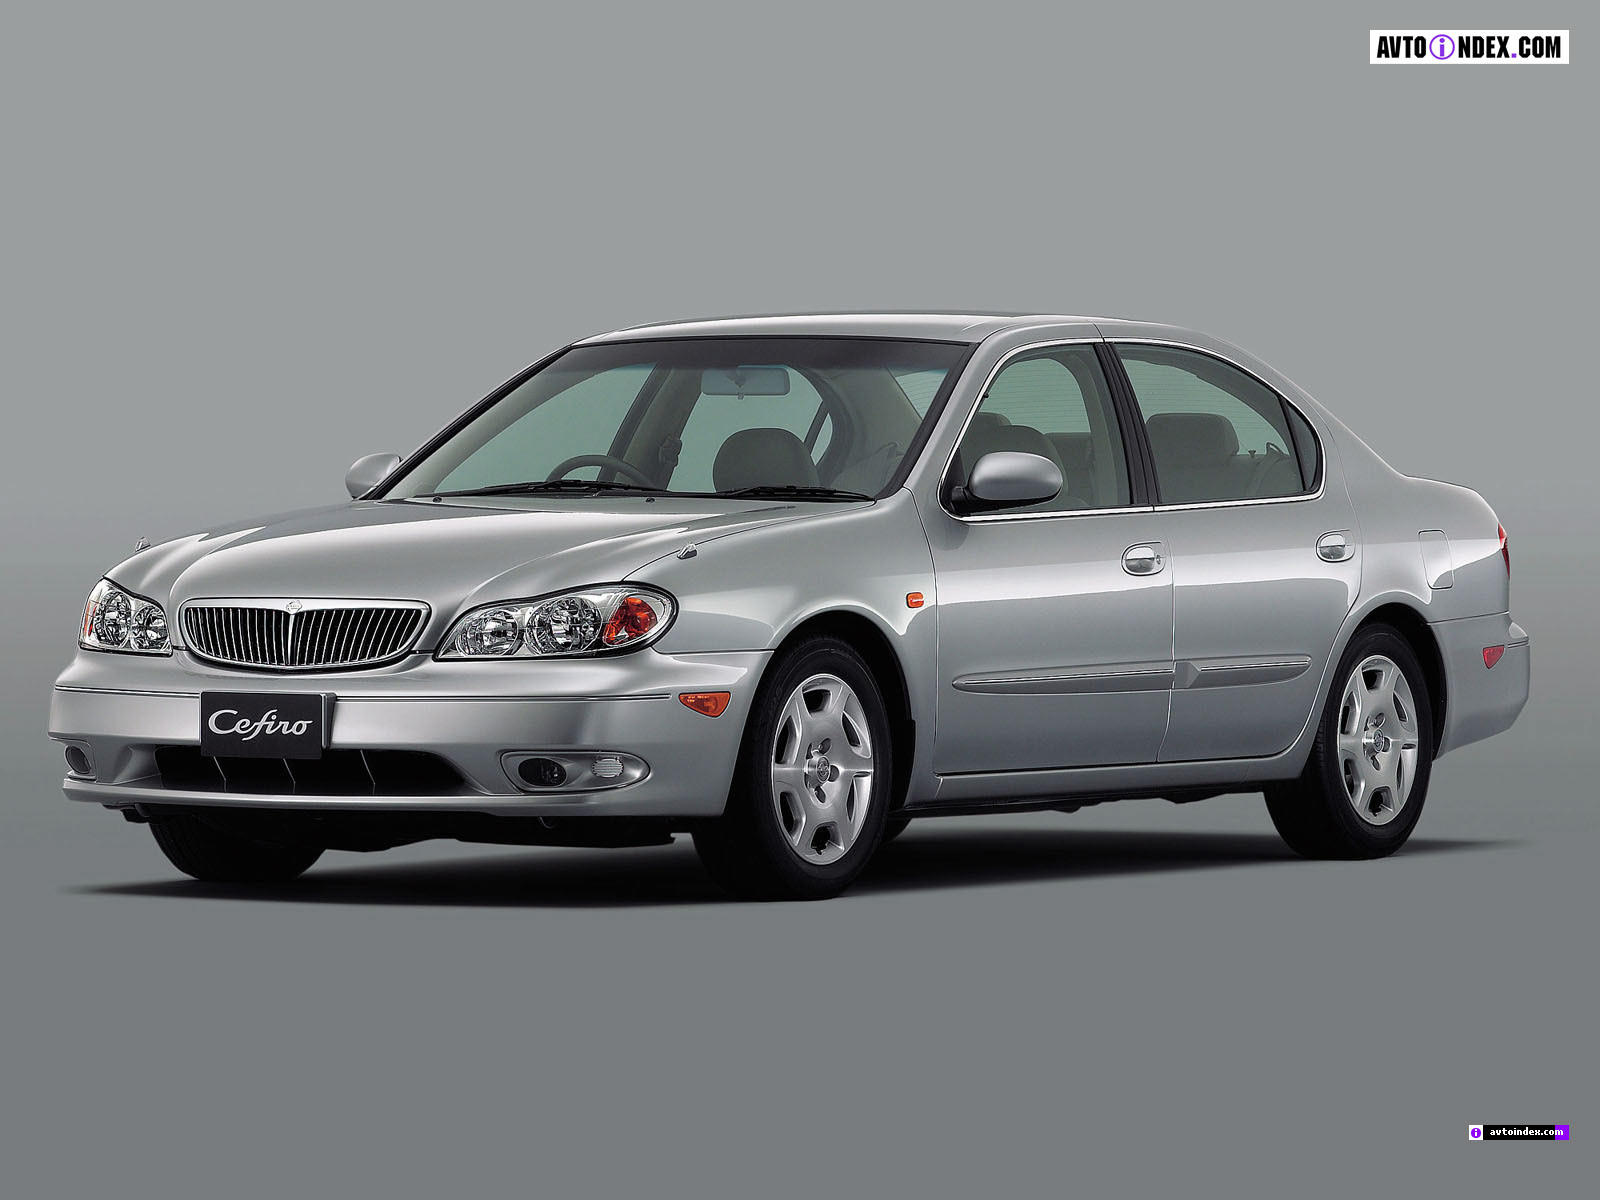 NISSAN Cefiro car technical data. Car specifications. Vehicle fuel ...